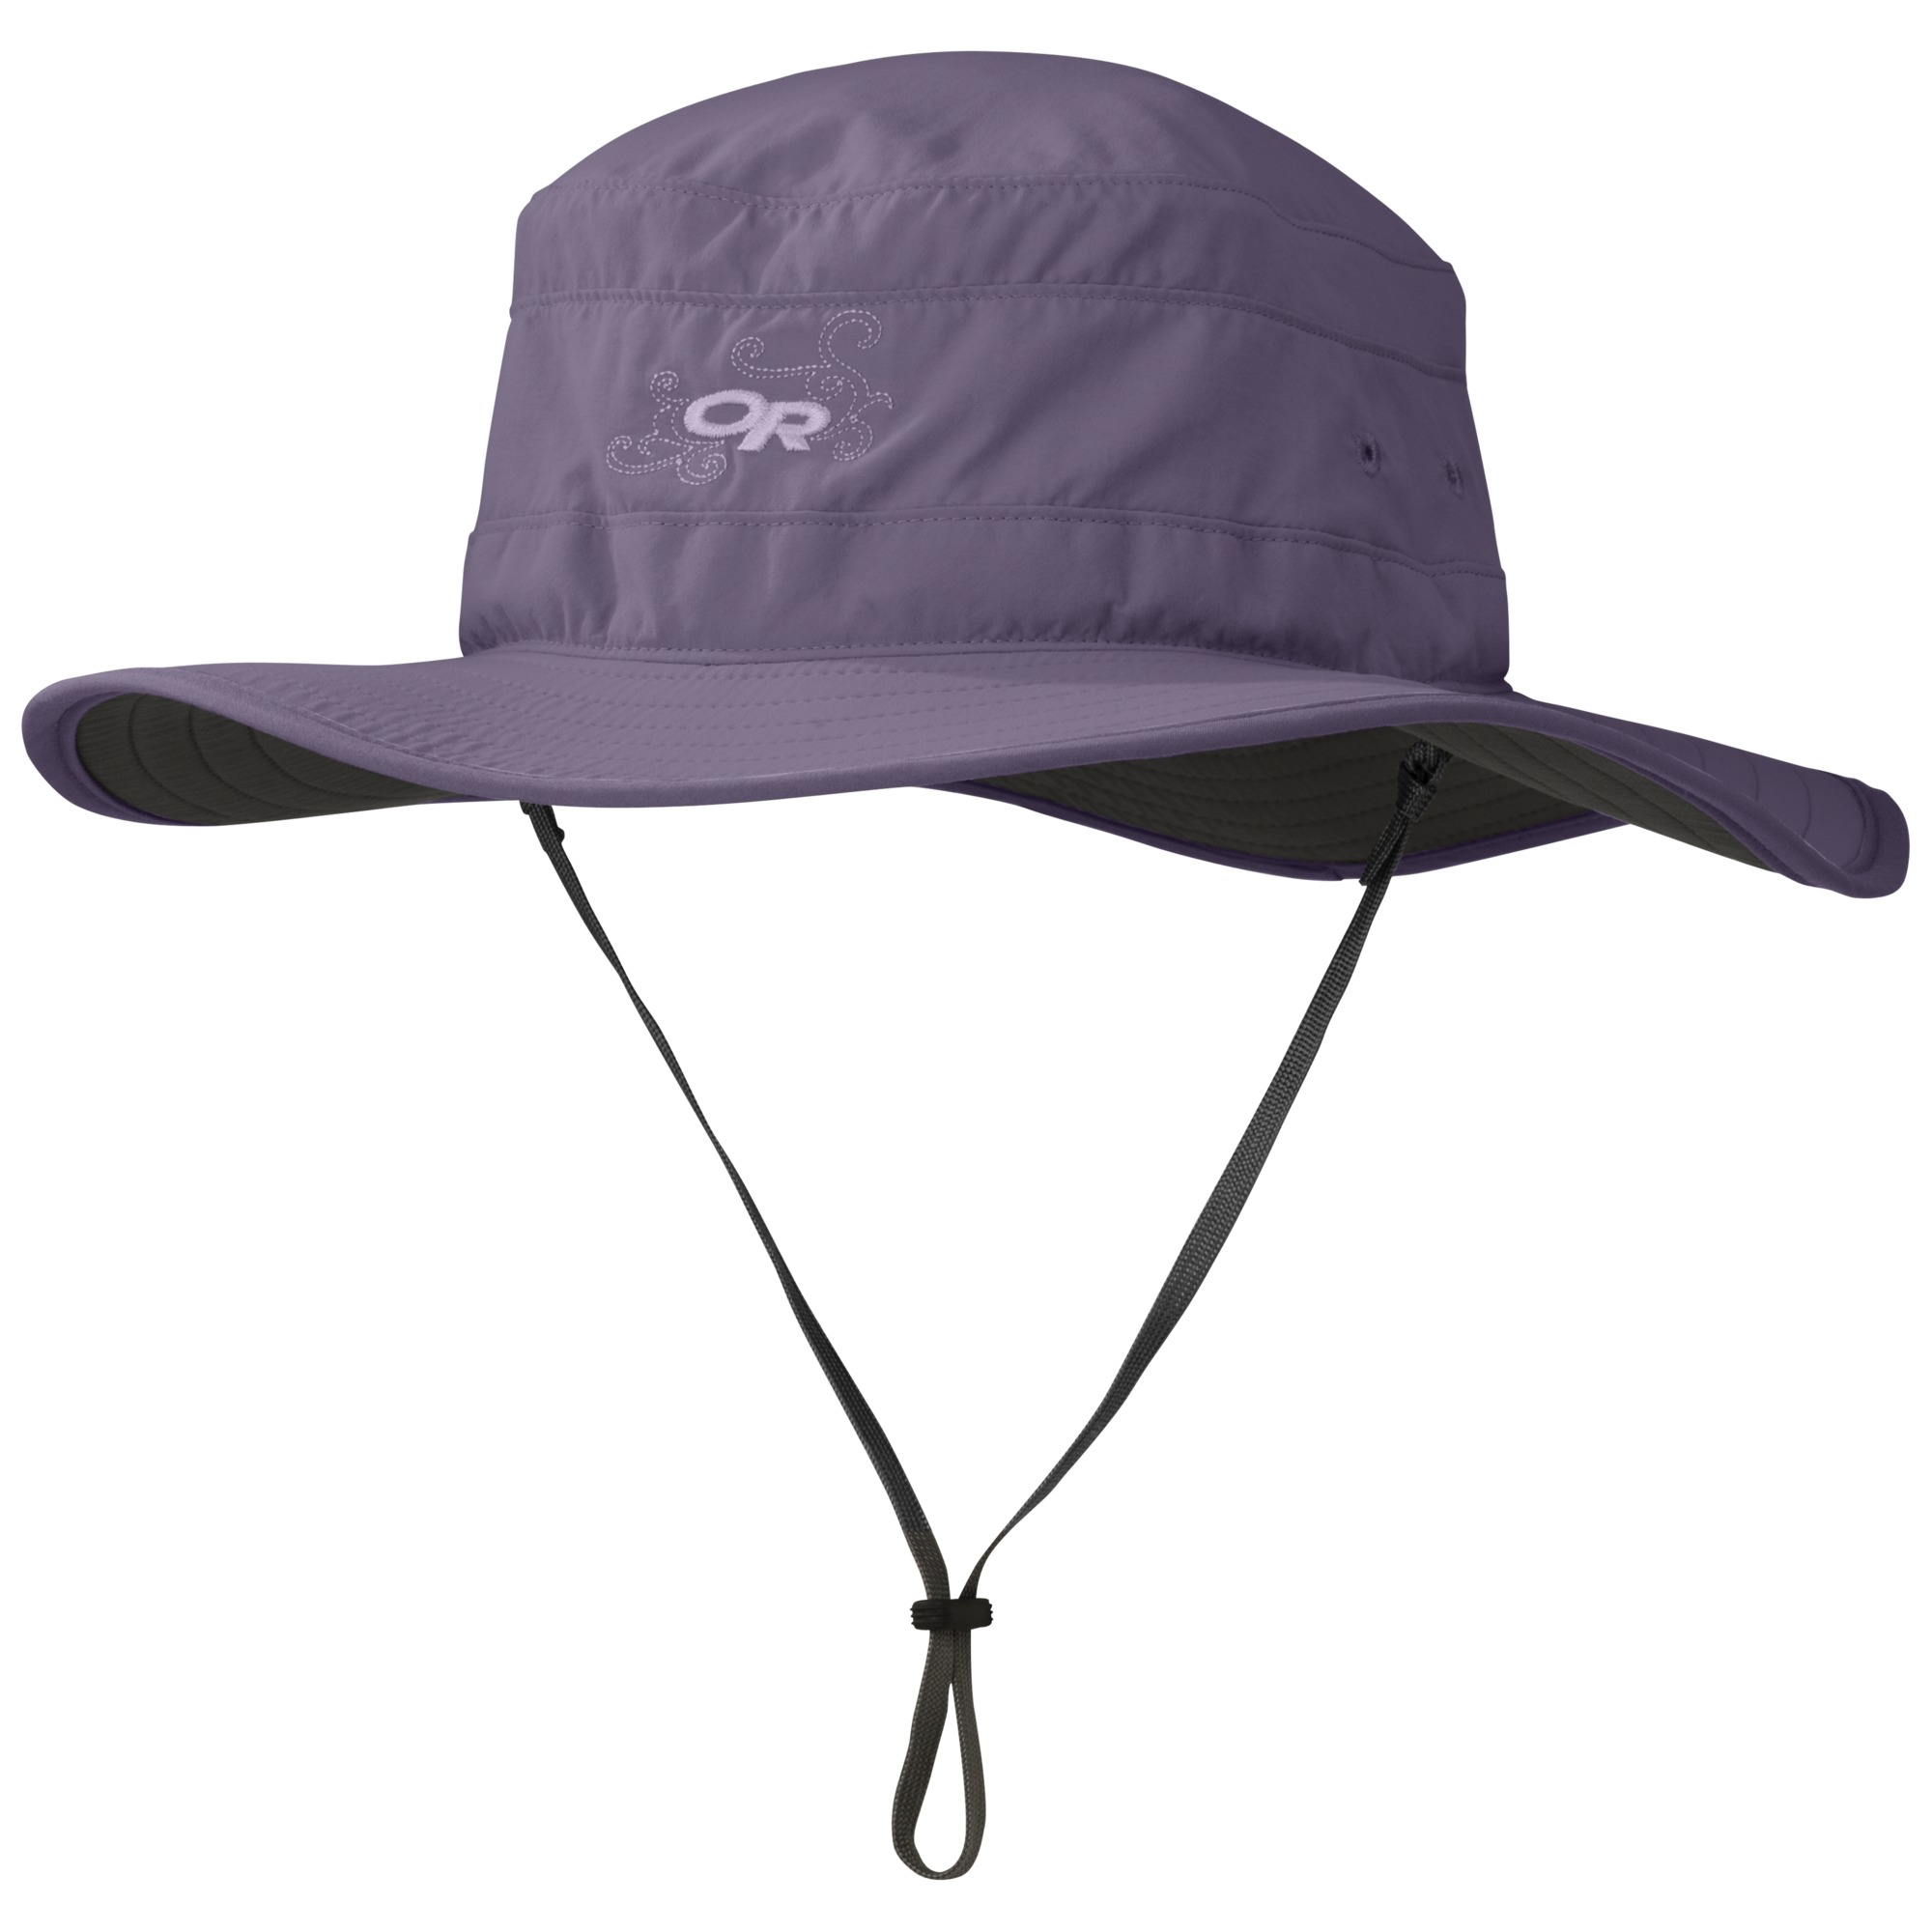 6fdf7efccf1e37 Women's Solar Roller Sun Hat - fig | Outdoor Research